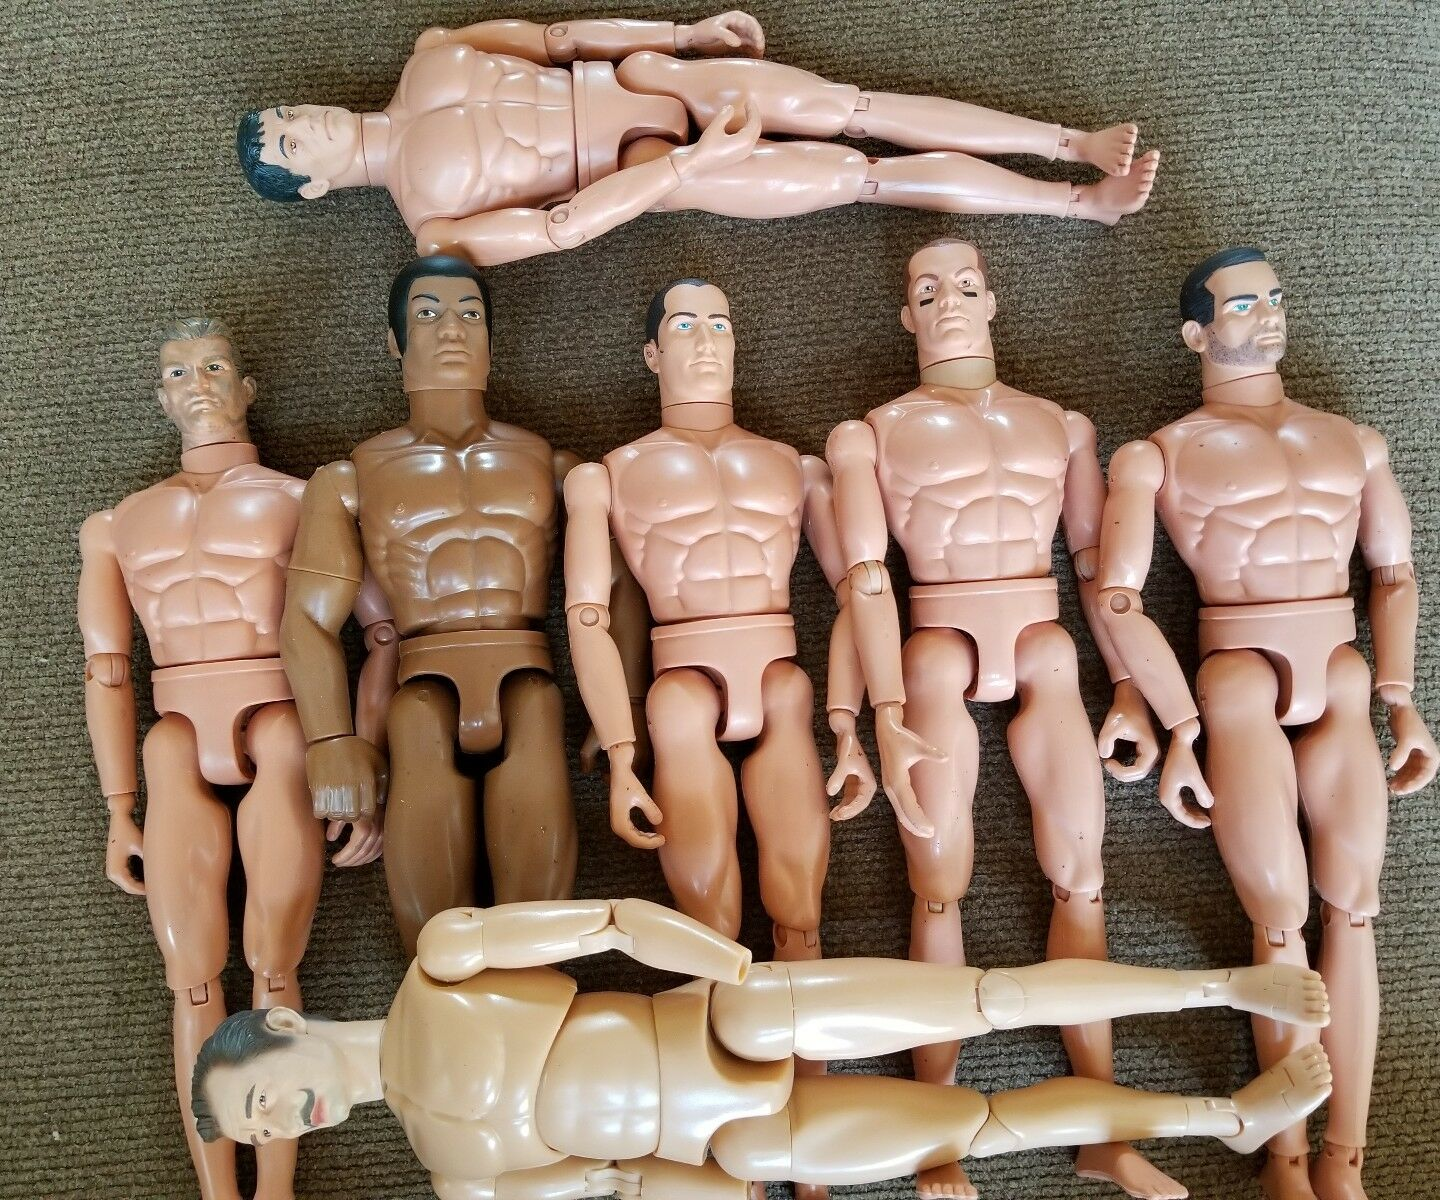 1 6 ONE DRAGON BODY ALL OTHERS GI JOE. ACTION FIGURE BODIES.